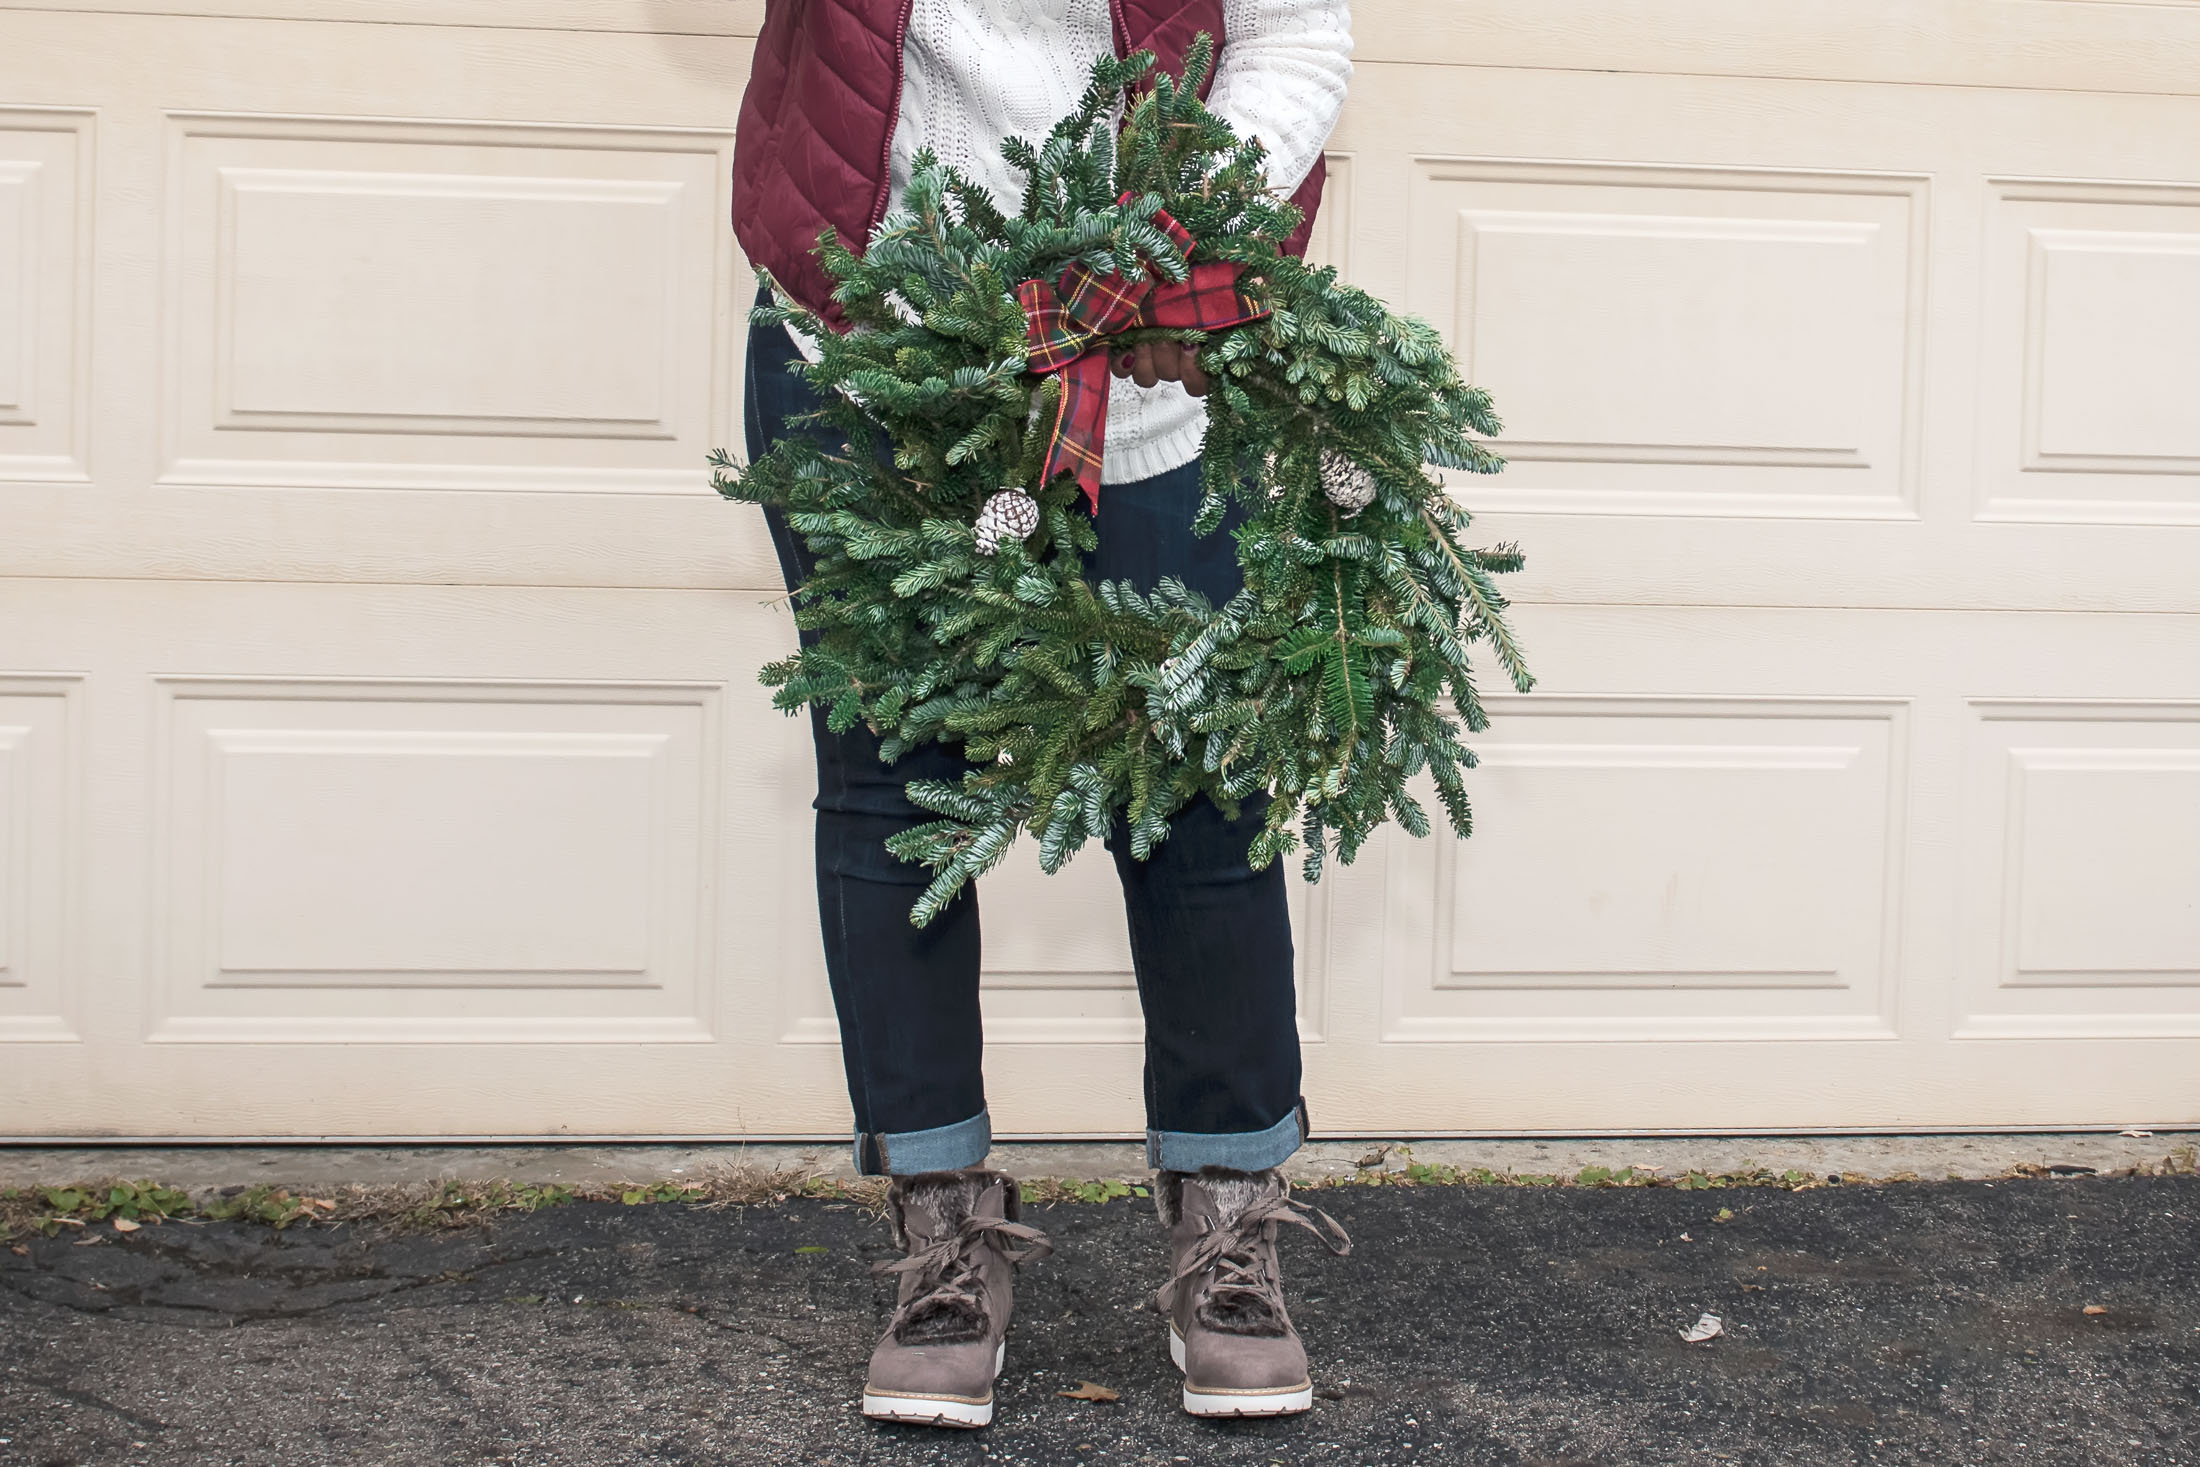 Wreath-hanging, gift-buying, tree trimming, dinner eating & holiday shopping. We've got your cute, festive-casual, go-to holiday outfit right here!Wreath-hanging, gift-buying, tree trimming, dinner eating & holiday shopping. We've got your cute, festive-casual, go-to holiday outfit right here!